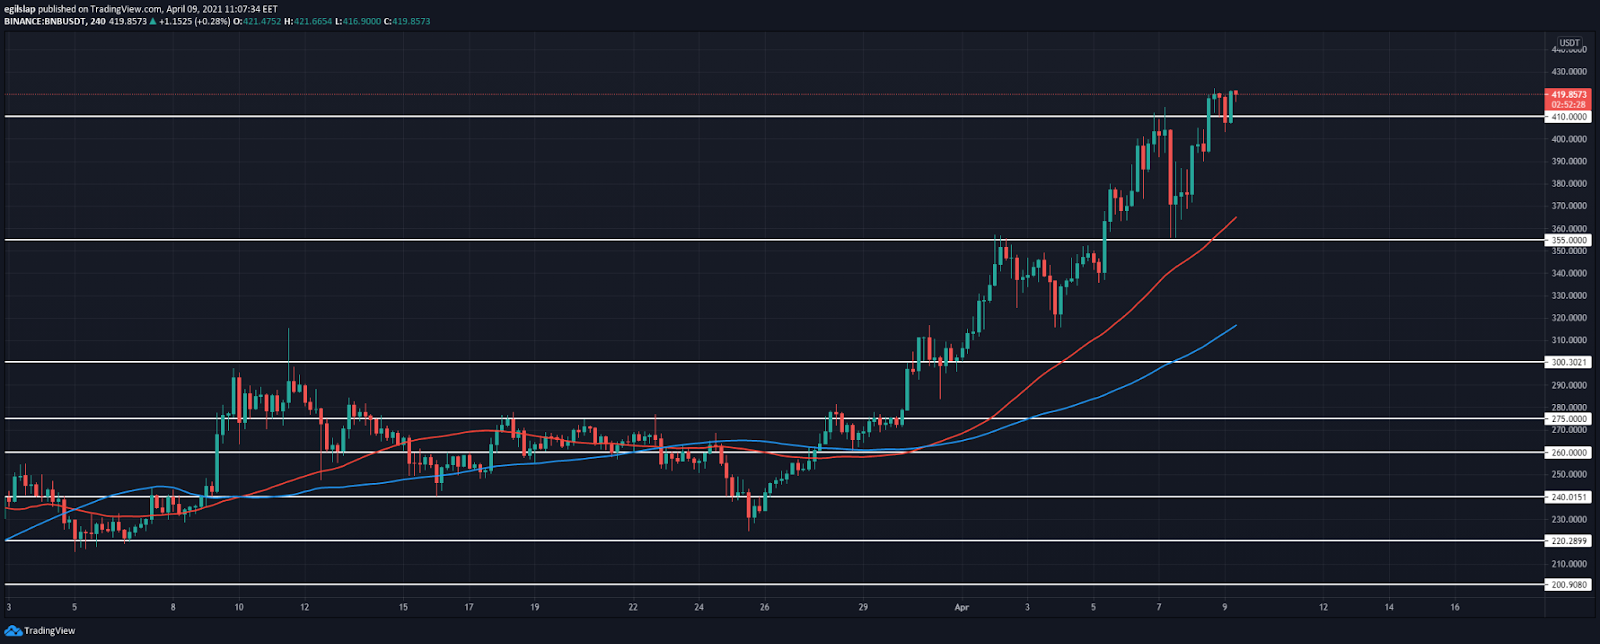 Binance Coin price prediction: Binance Coin sets new ATH at $422, prepares to move higher today